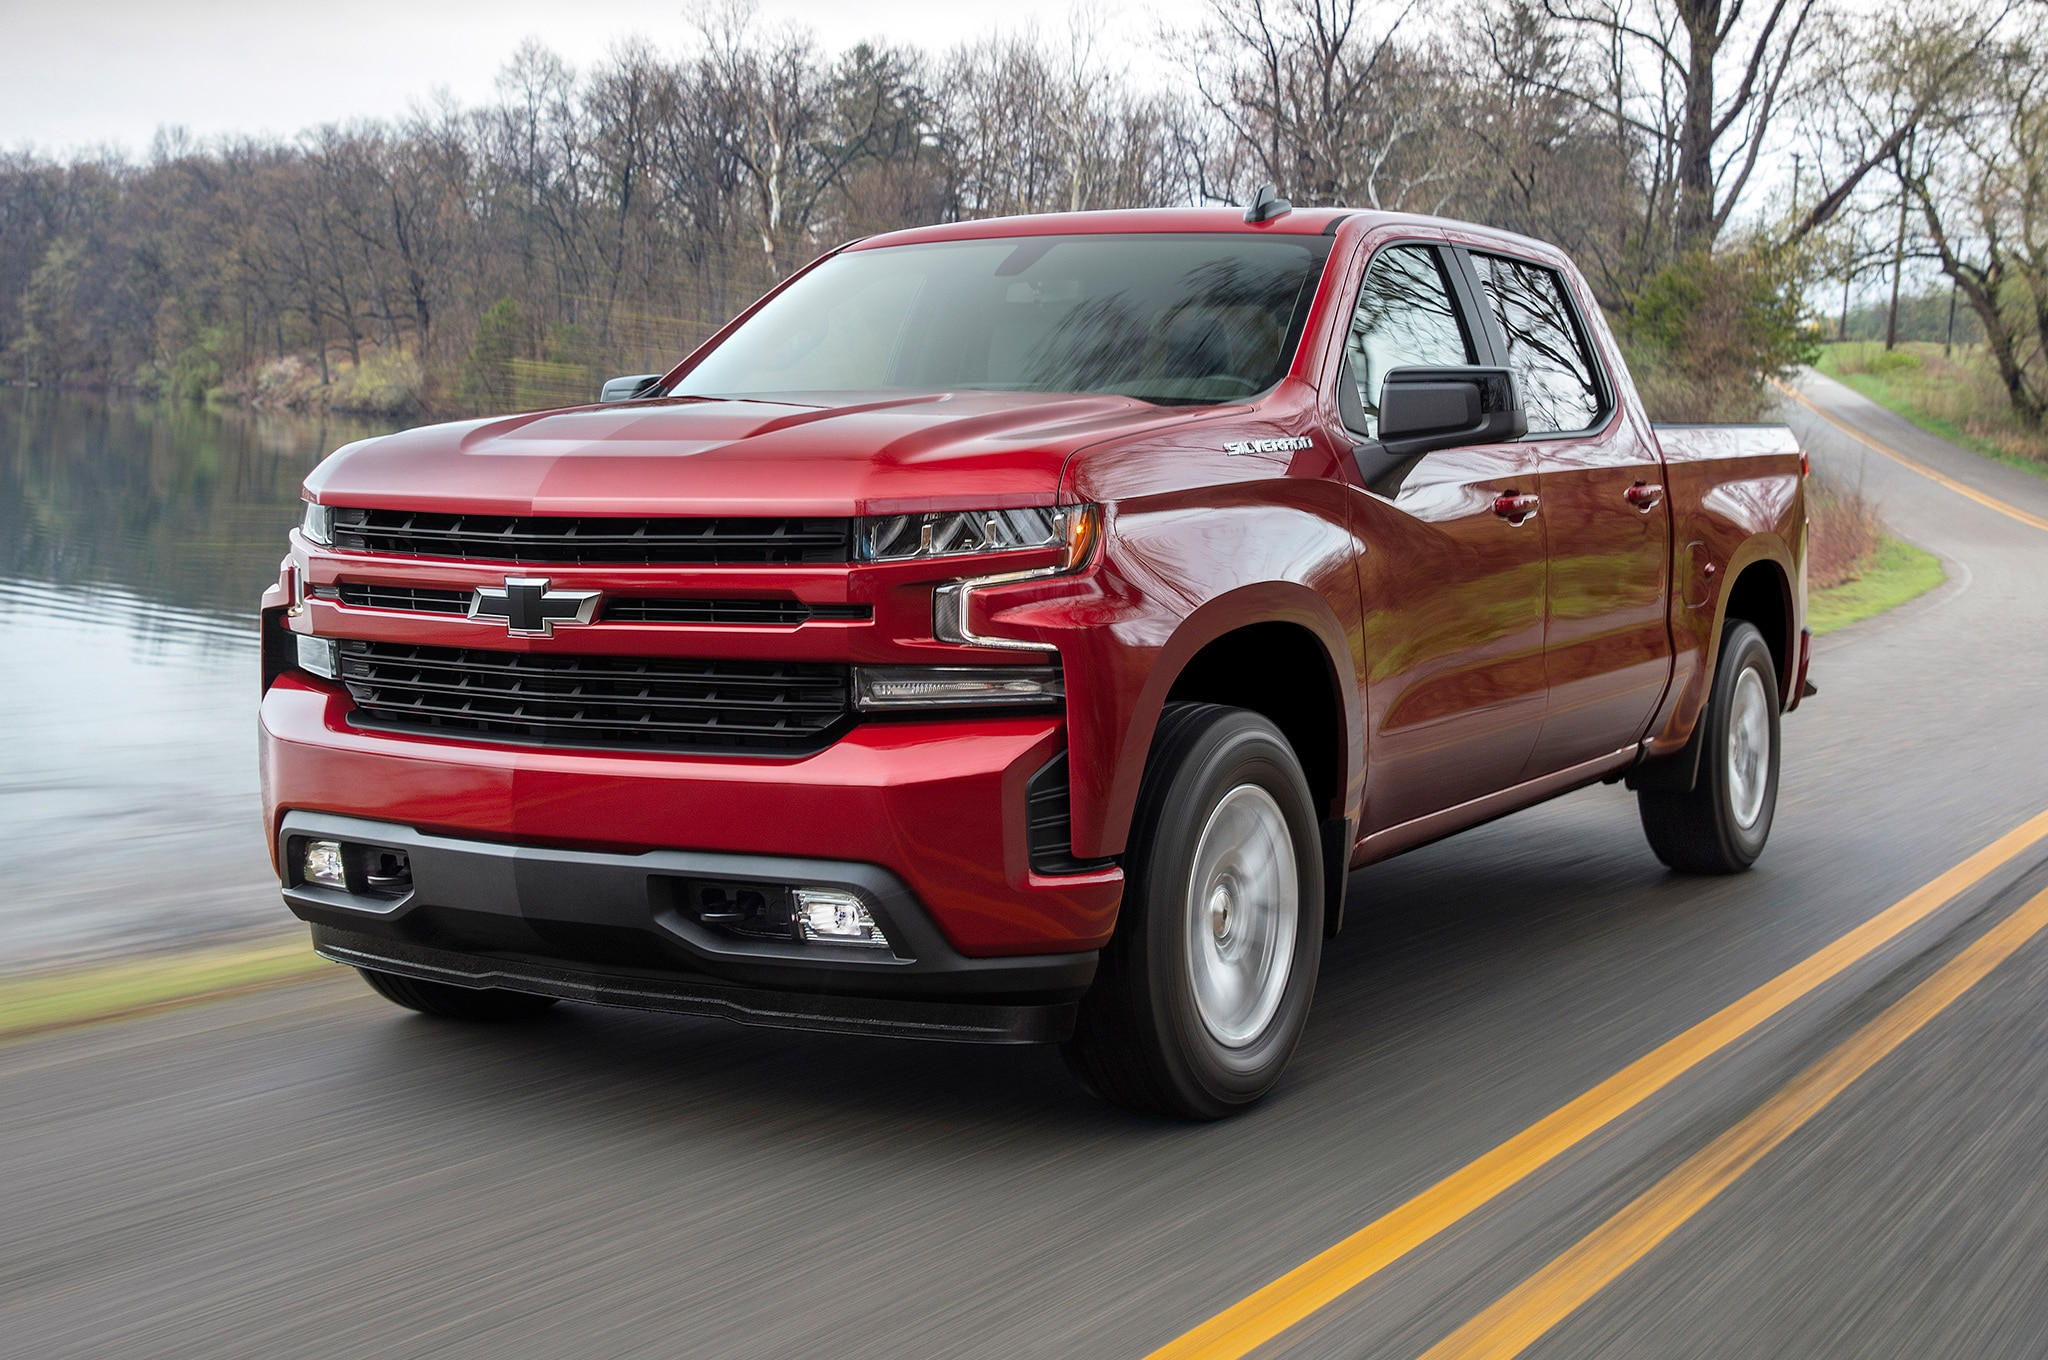 2019 Chevrolet Silverado RST Front Side View In Motion